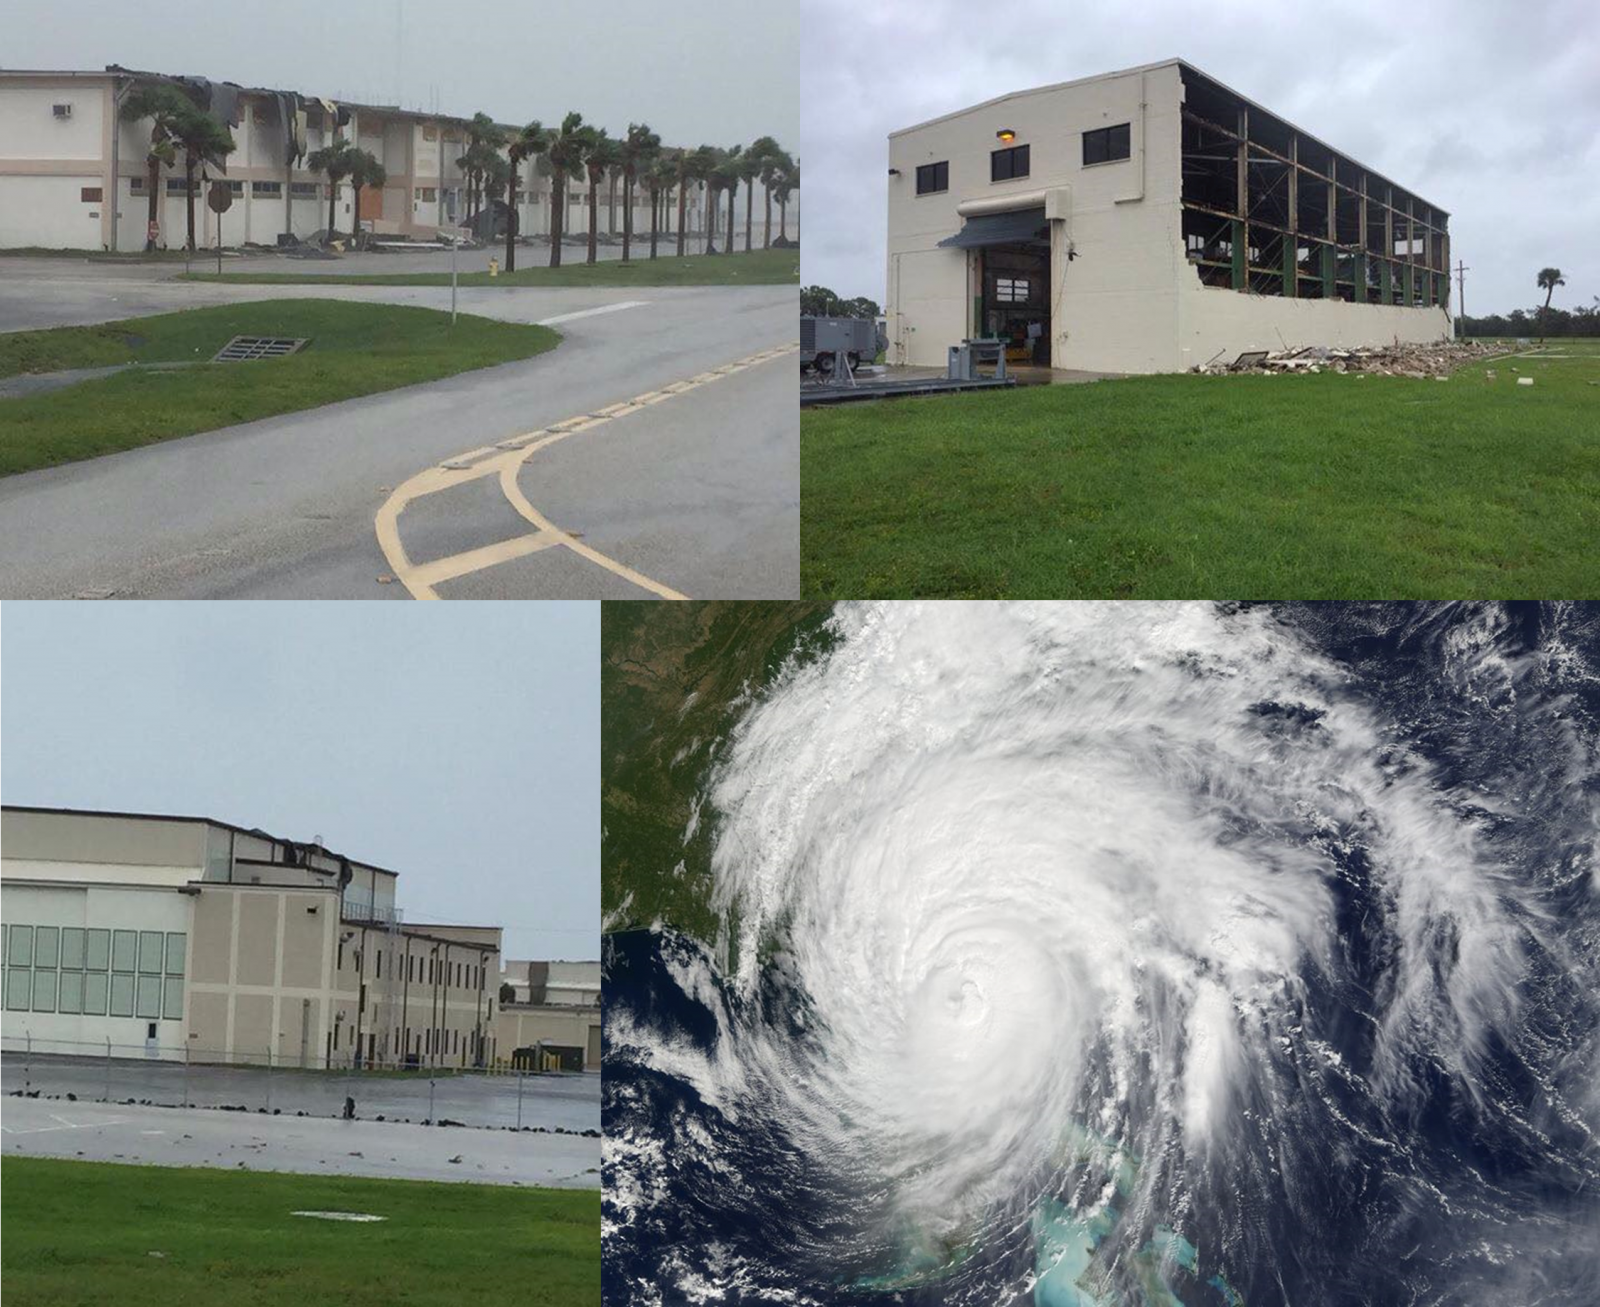 hurricane-matthew-caused-extensive-damage-to-cape-canaveral-air-force-station-in Florida photo credit 45th Space Wing